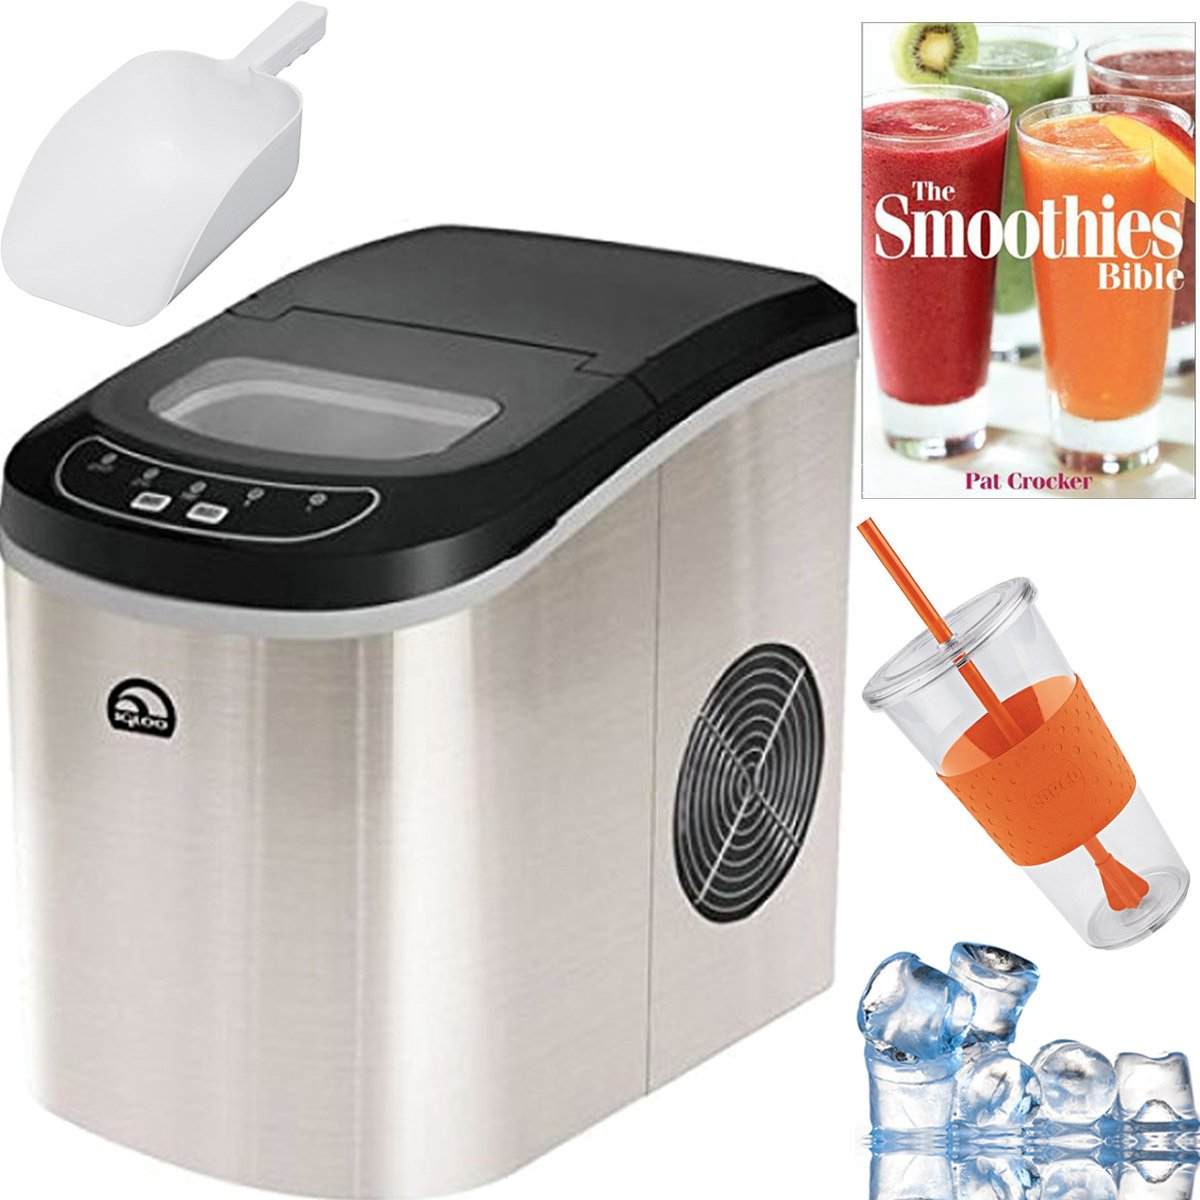 Igloo Compact Portable Ice Maker (Stainless Steel) Plus Smoothie Bible Bundle - ICE102ST